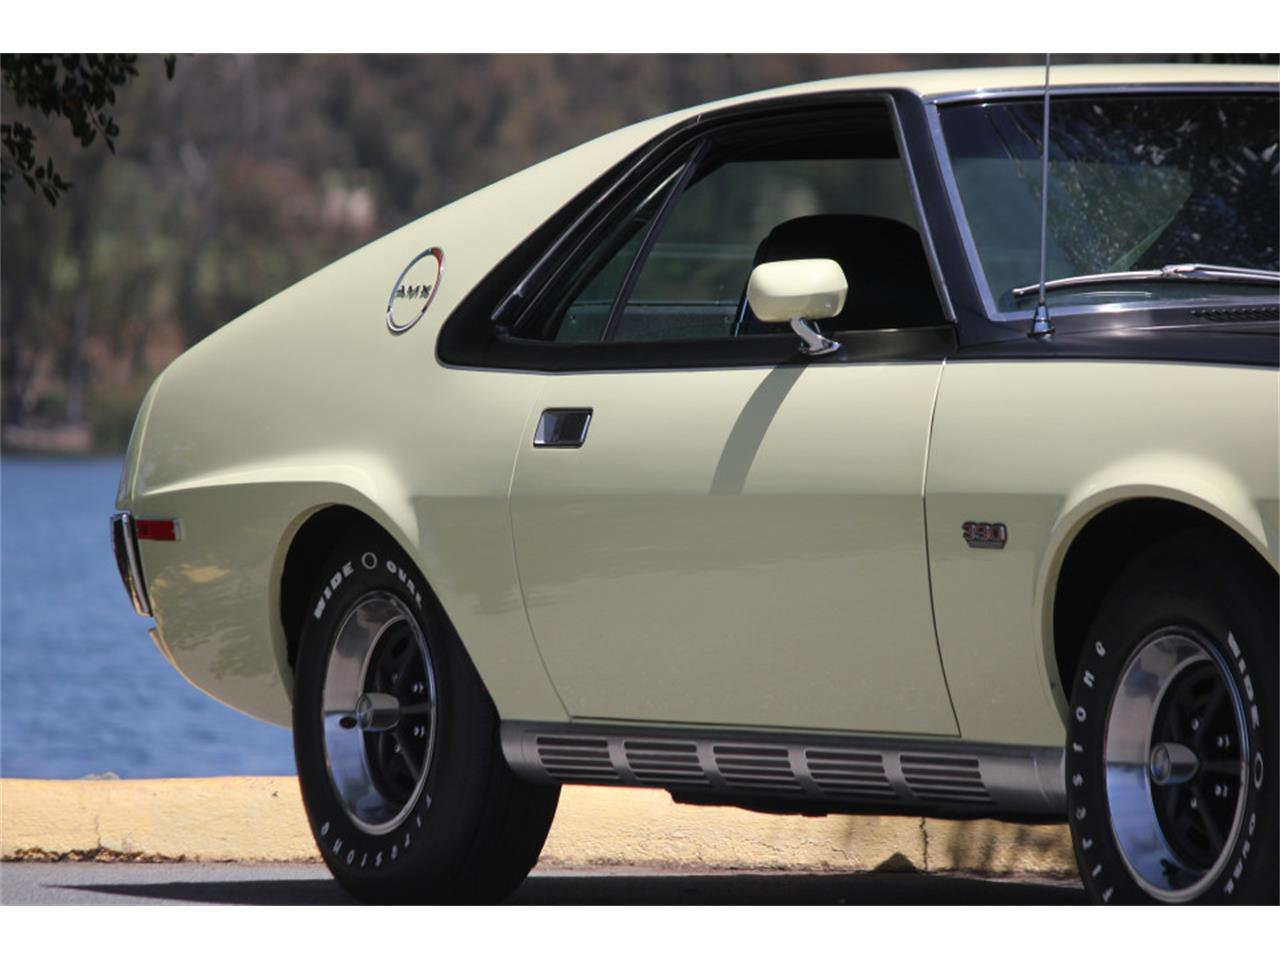 Large Picture of 1970 AMX located in San Diego  California - $59,500.00 - QCFB